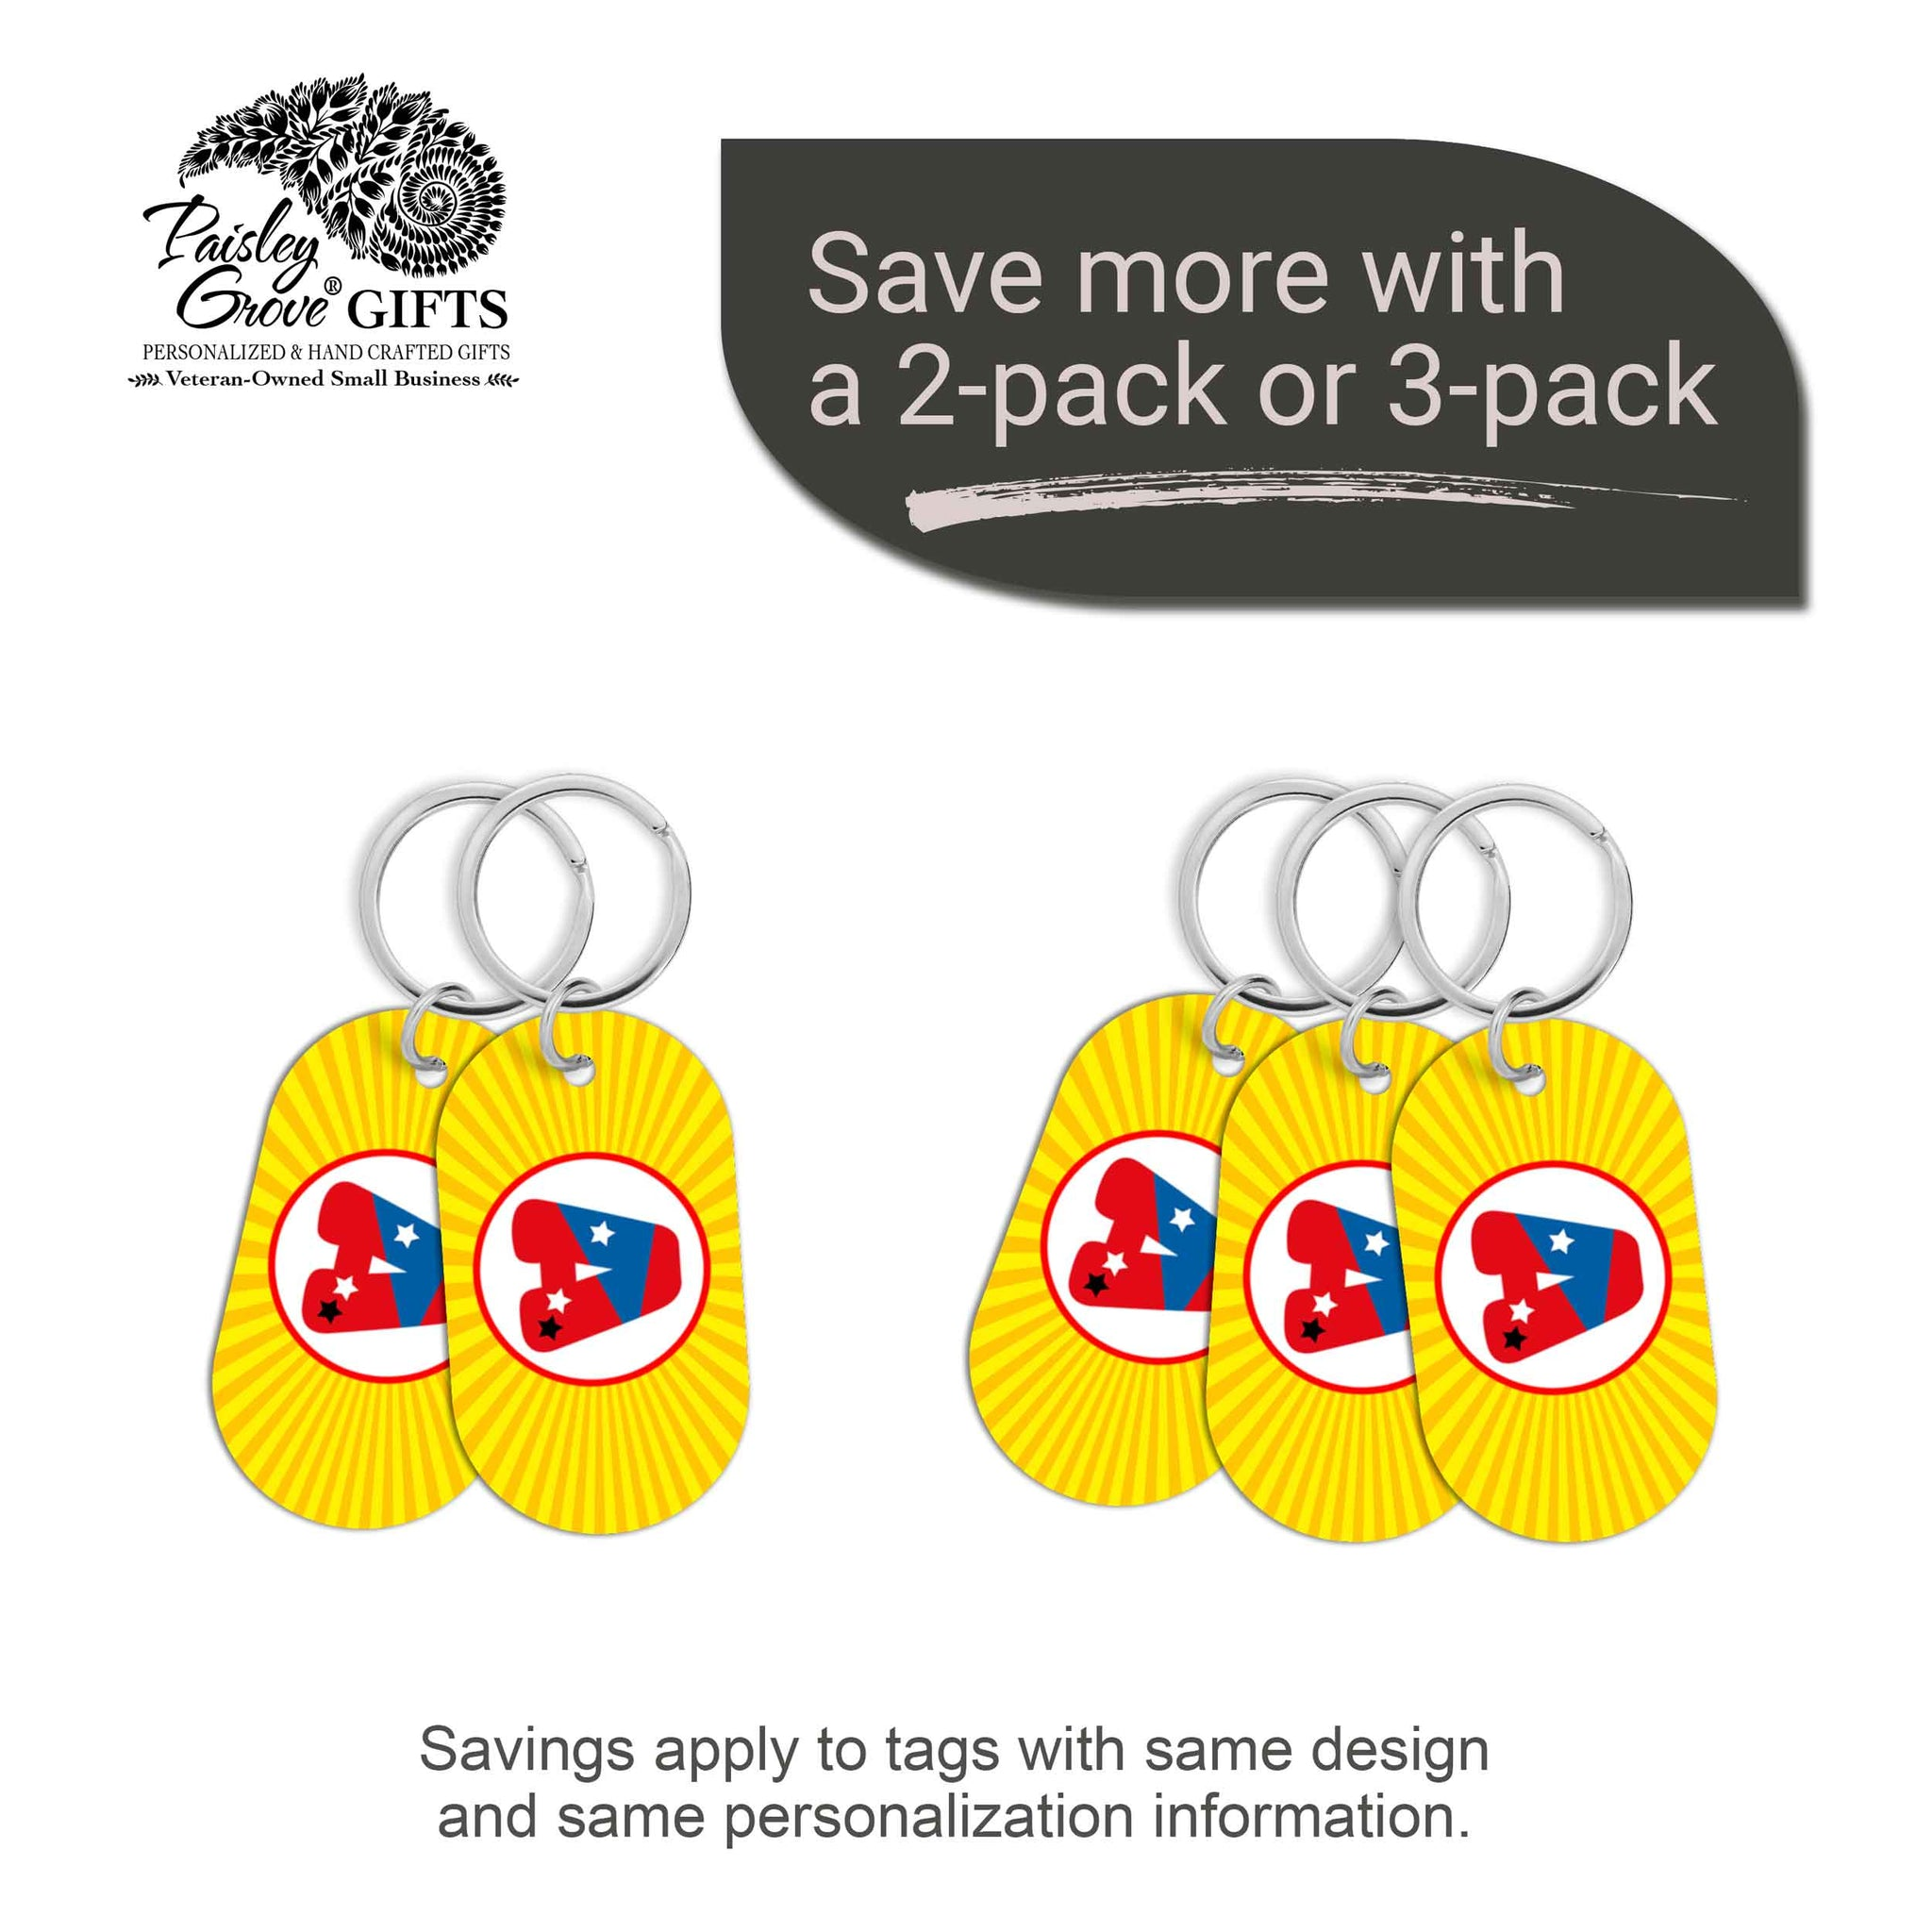 CopyrightPaisleyGroveGIFTS S070a6 Personalized bag ID tags for luggage or bags 2 or 3 pack option savings